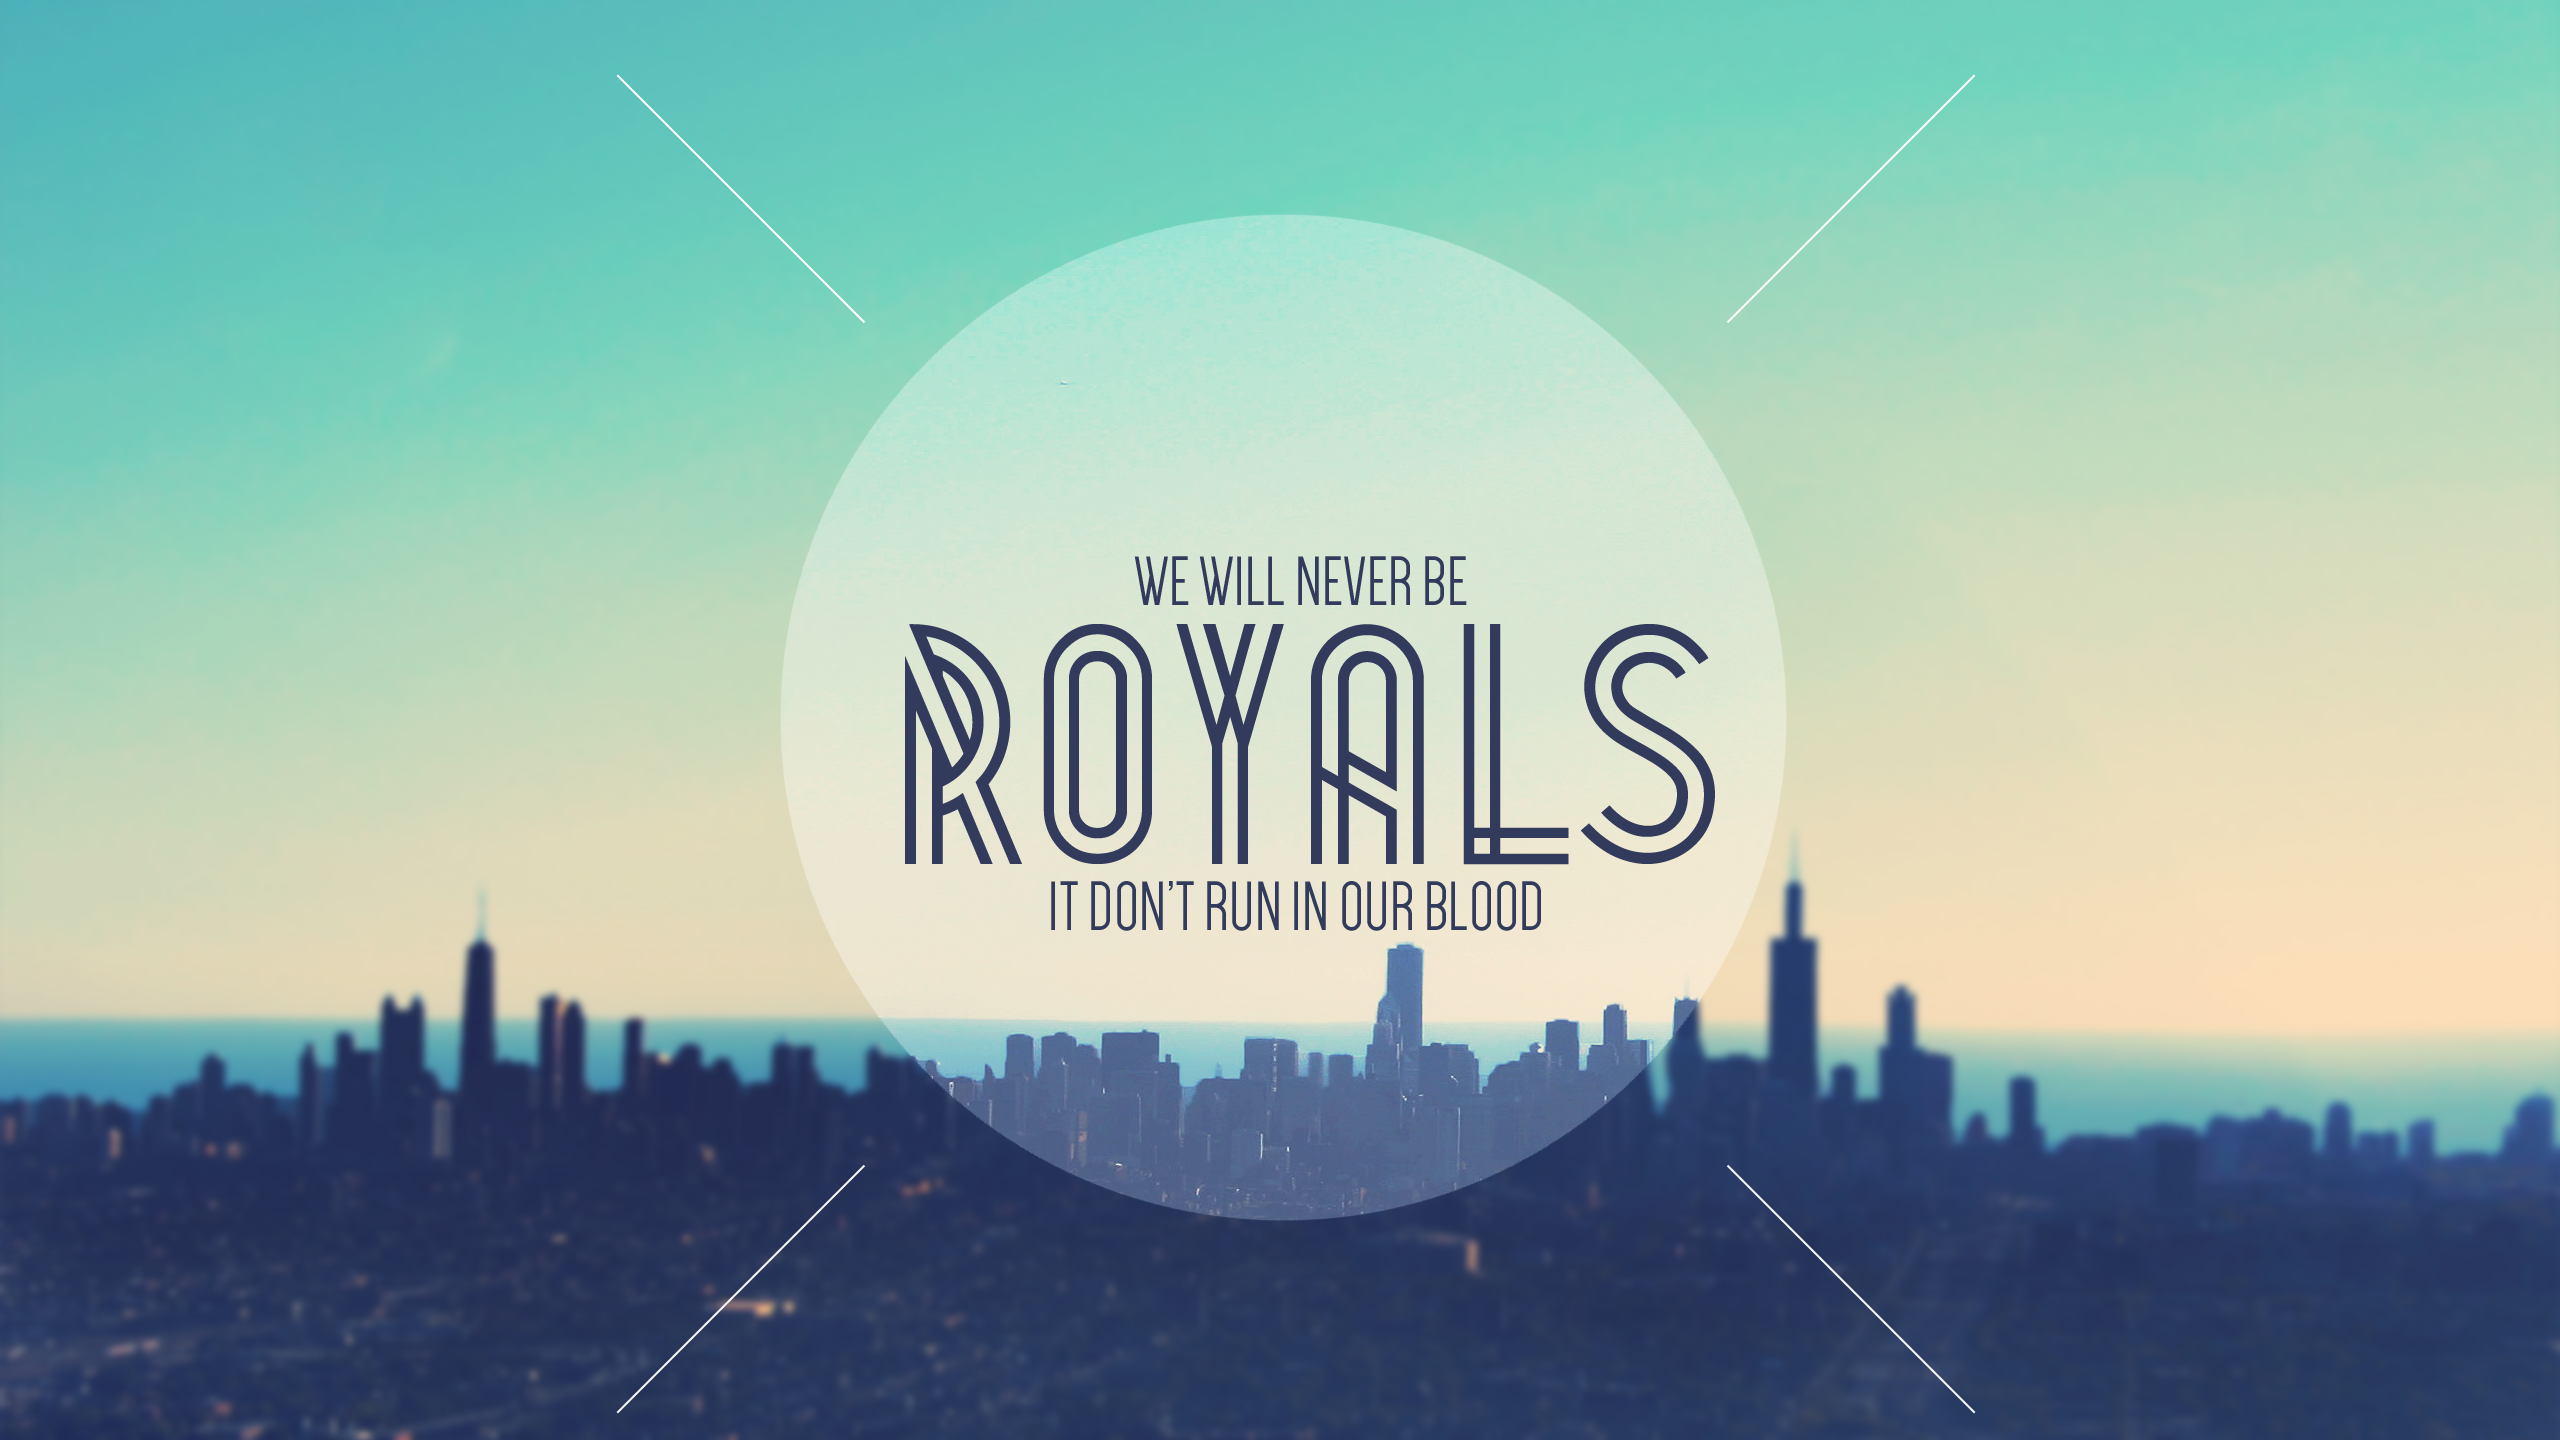 File: Royals-100% Quality HD.jpg | Kym Madera